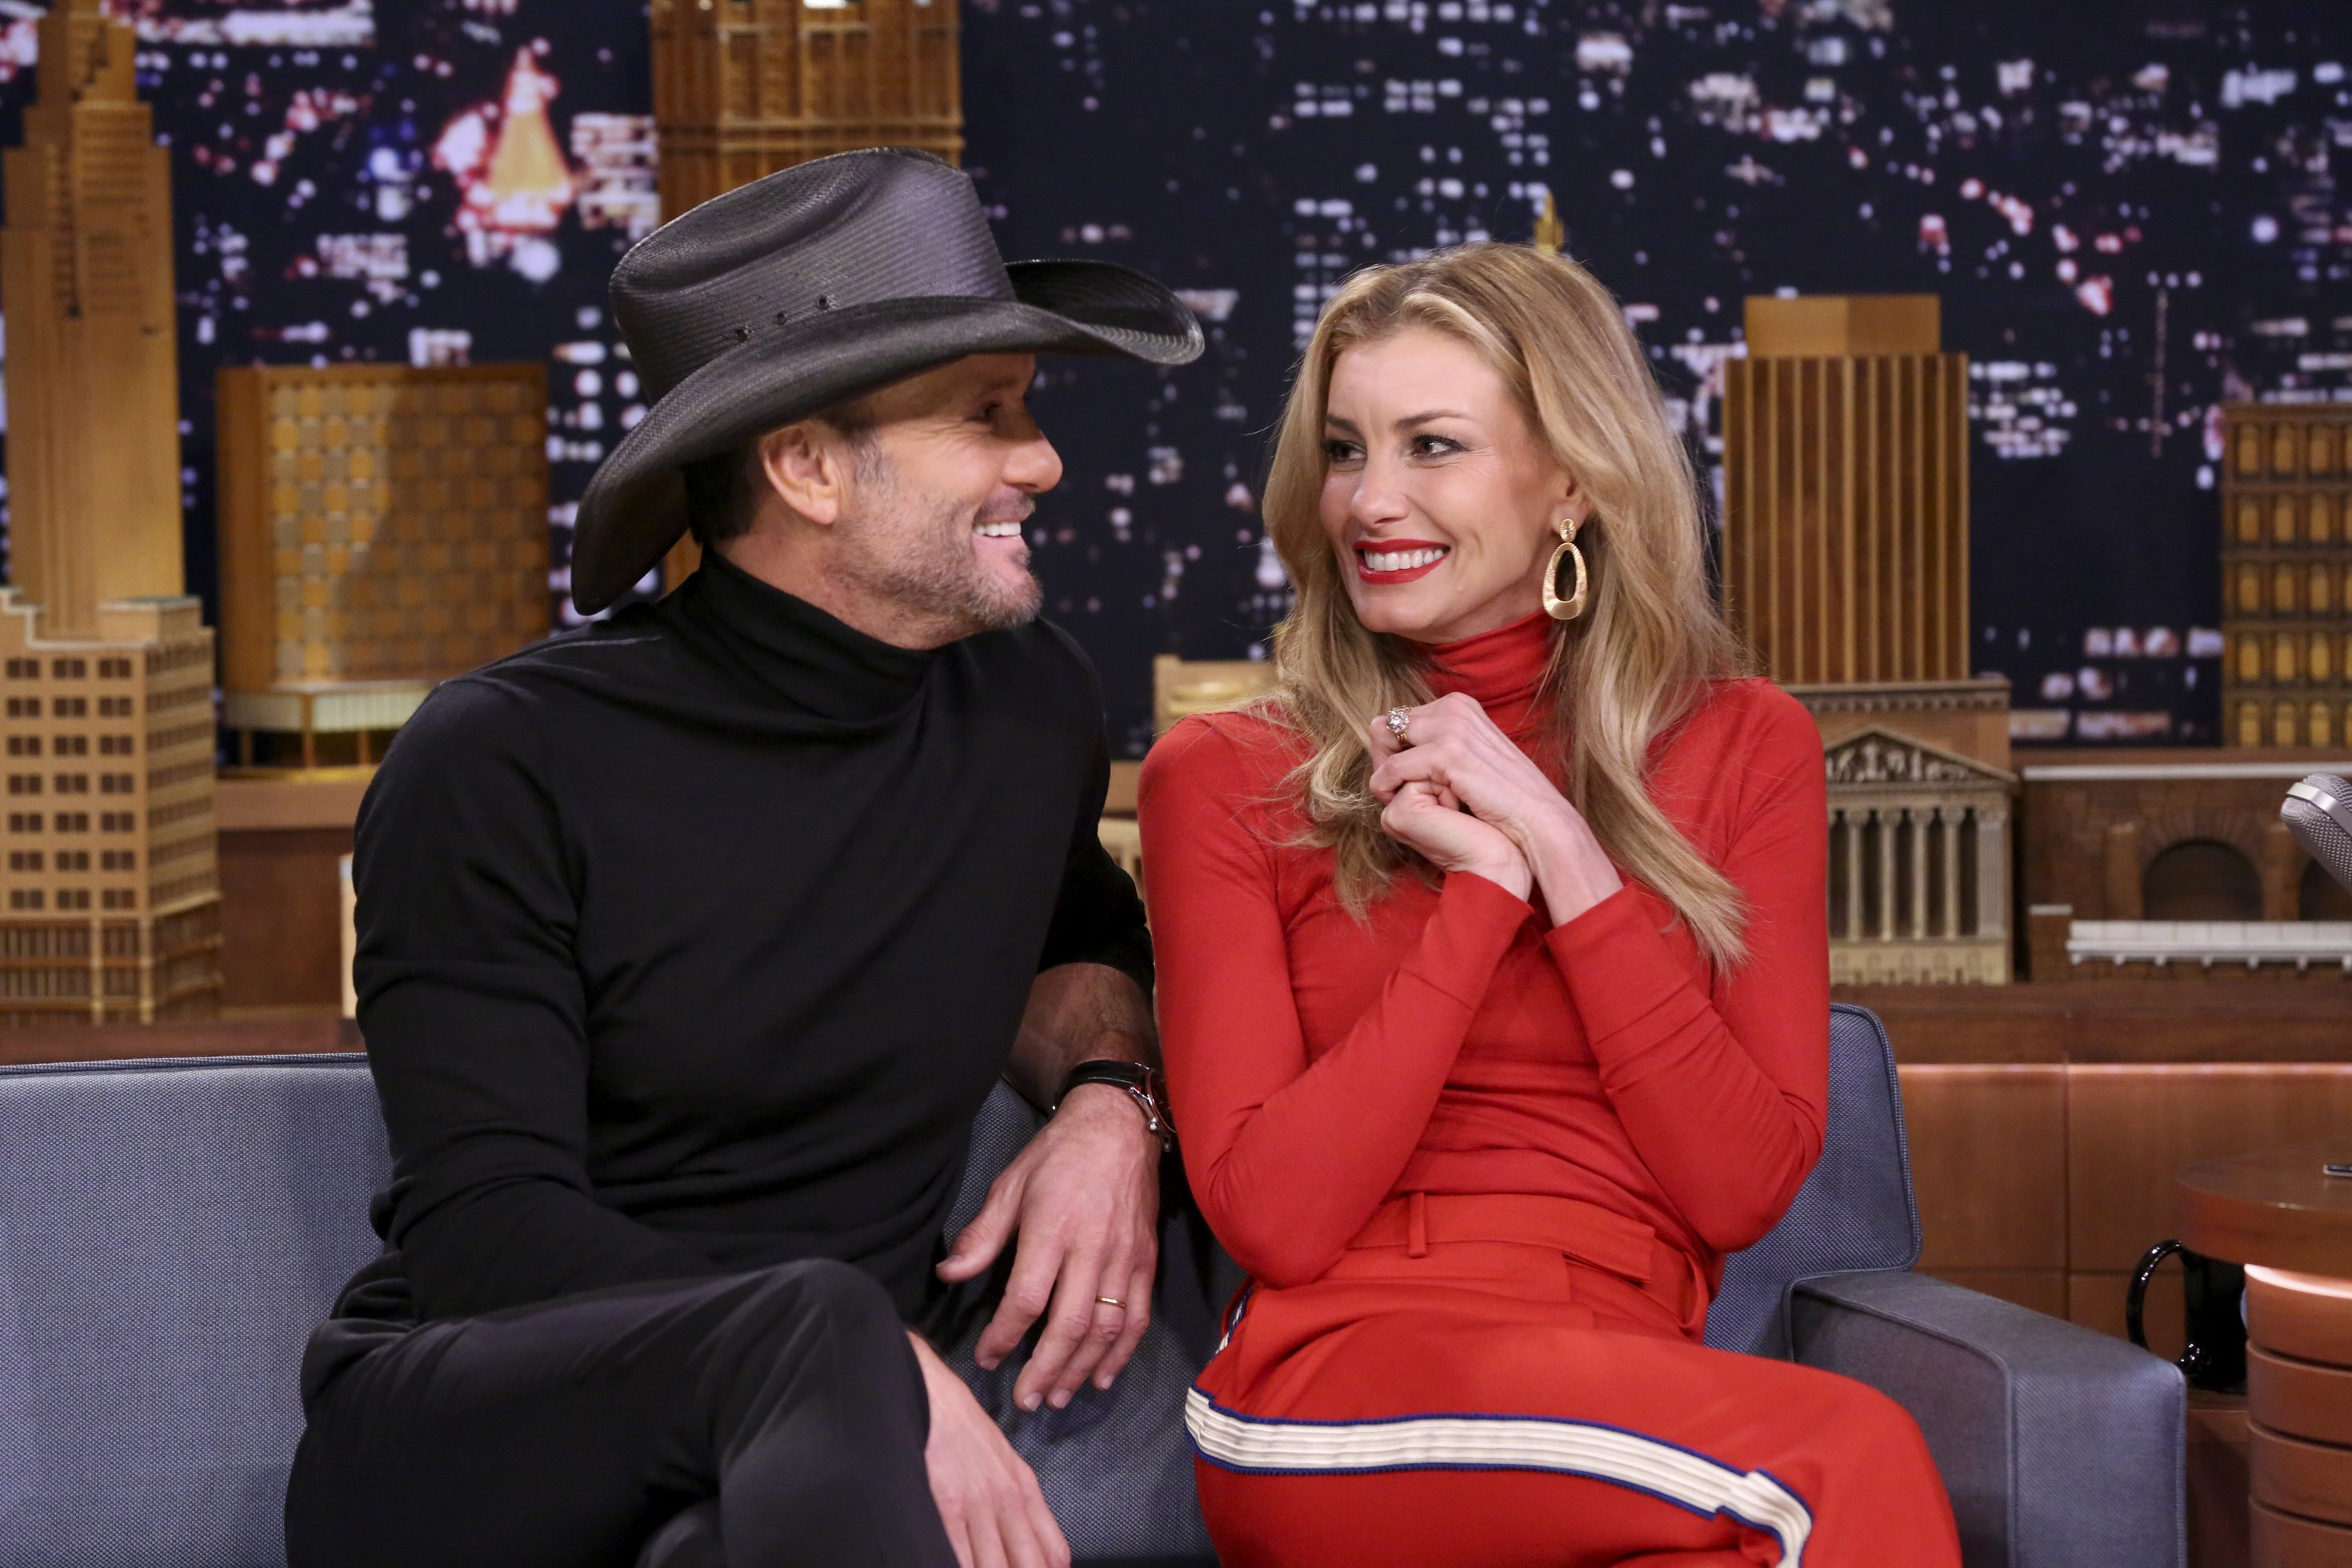 Image Credits: Getty Images / Andrew Lipovsky / NBCU Photo Bank / NBCUniversal  | Singers Tim McGraw and Faith Hill during an interview on November 16, 2017.